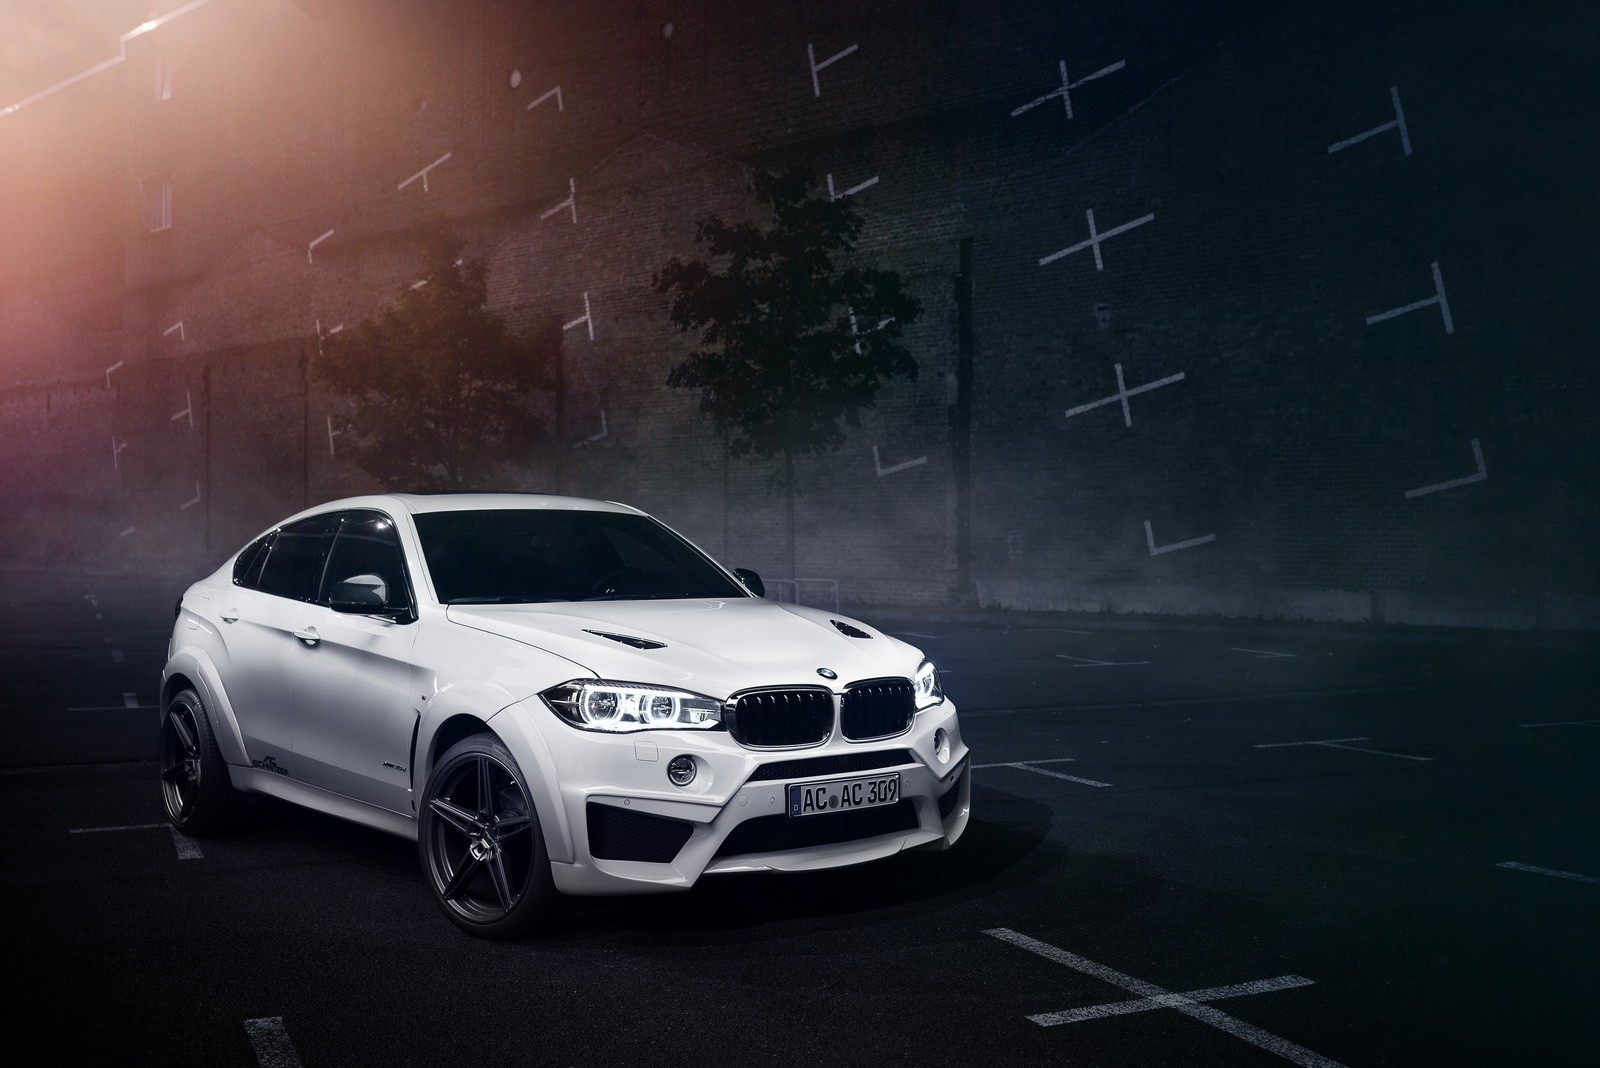 Bwm X6 Falcon Tuned By Ac Schnitzer Debuts At Essen